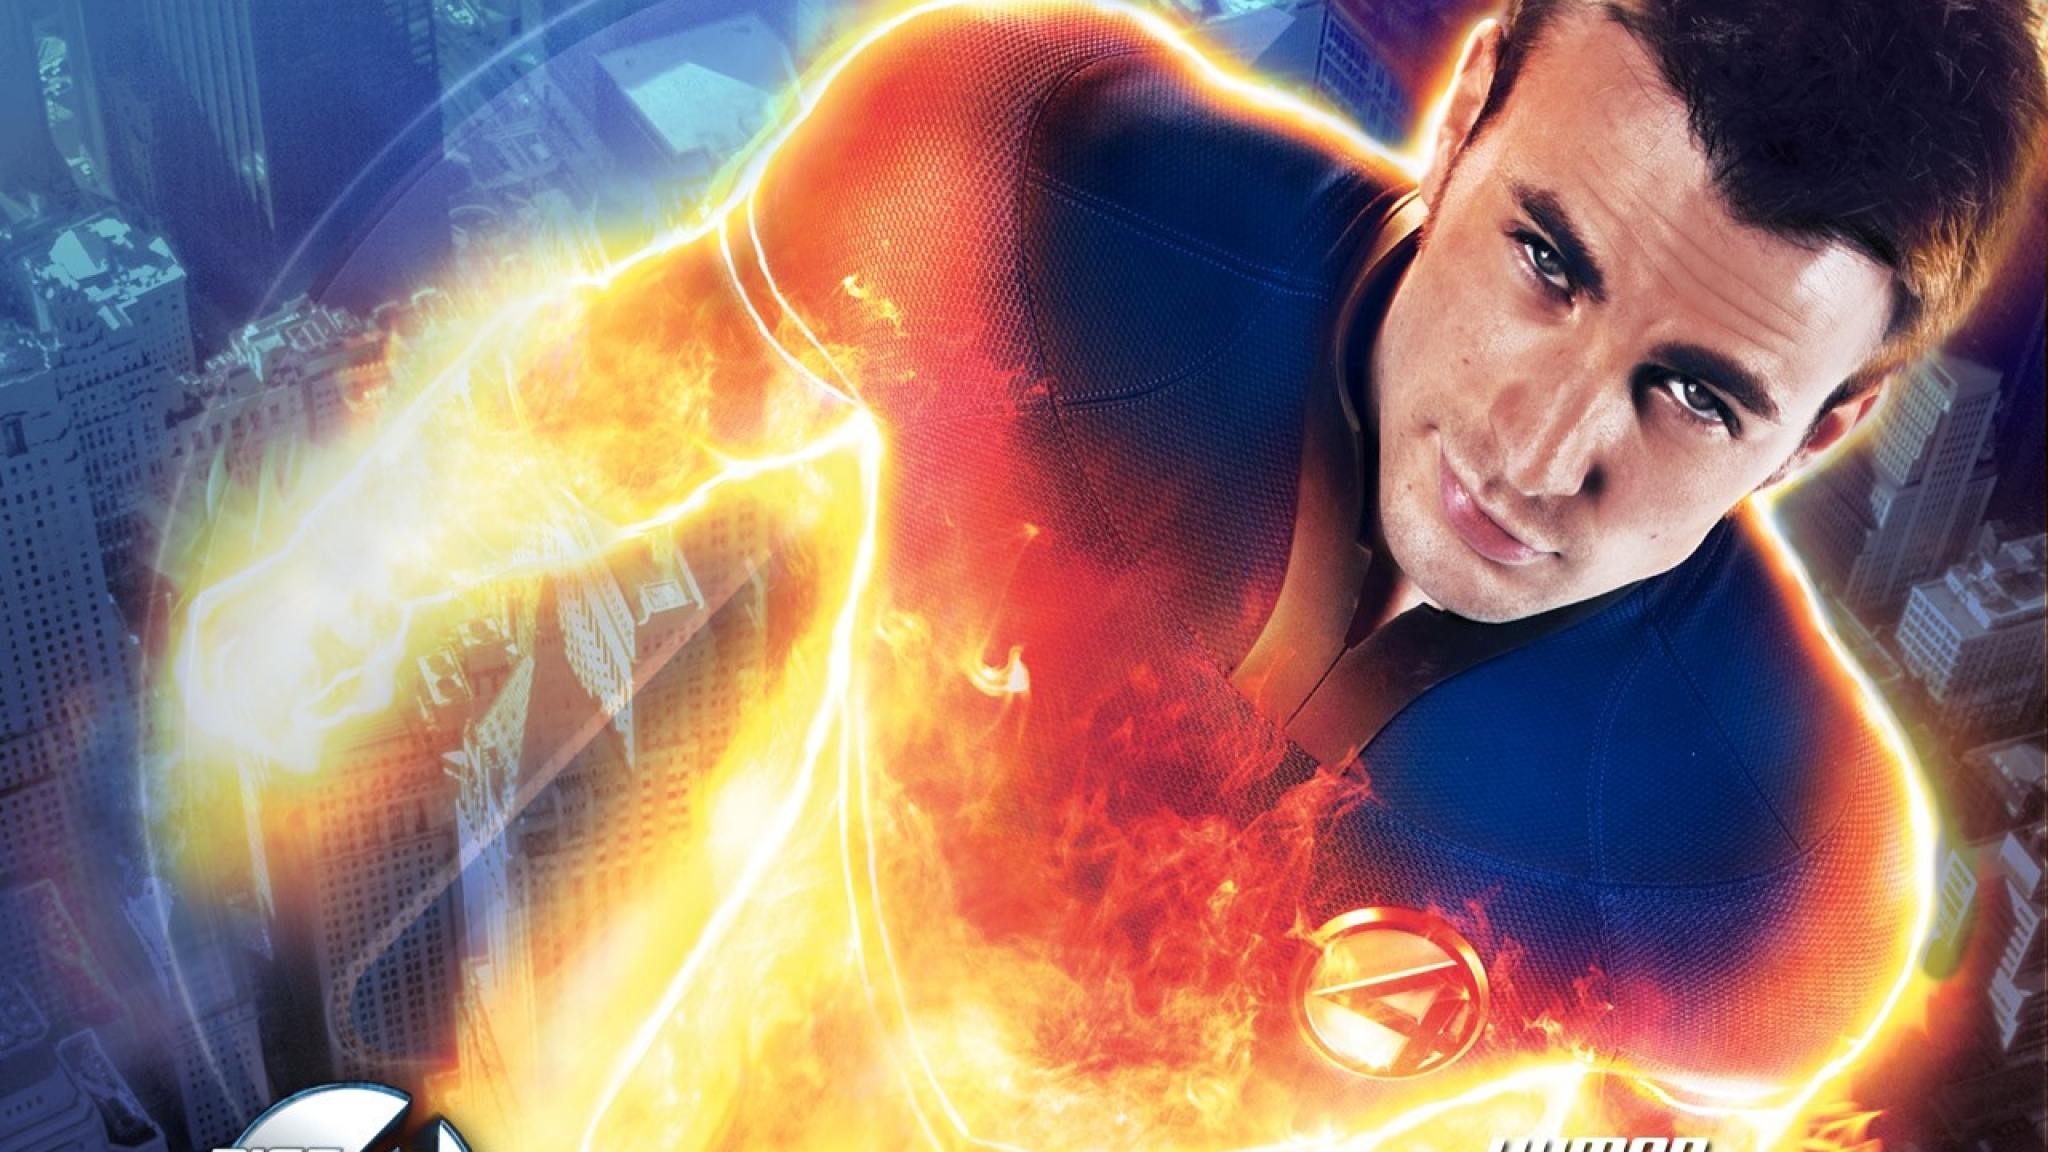 Download Wallpaper 2048x1152 fantastic 4 human torch johnny storm 2048x1152